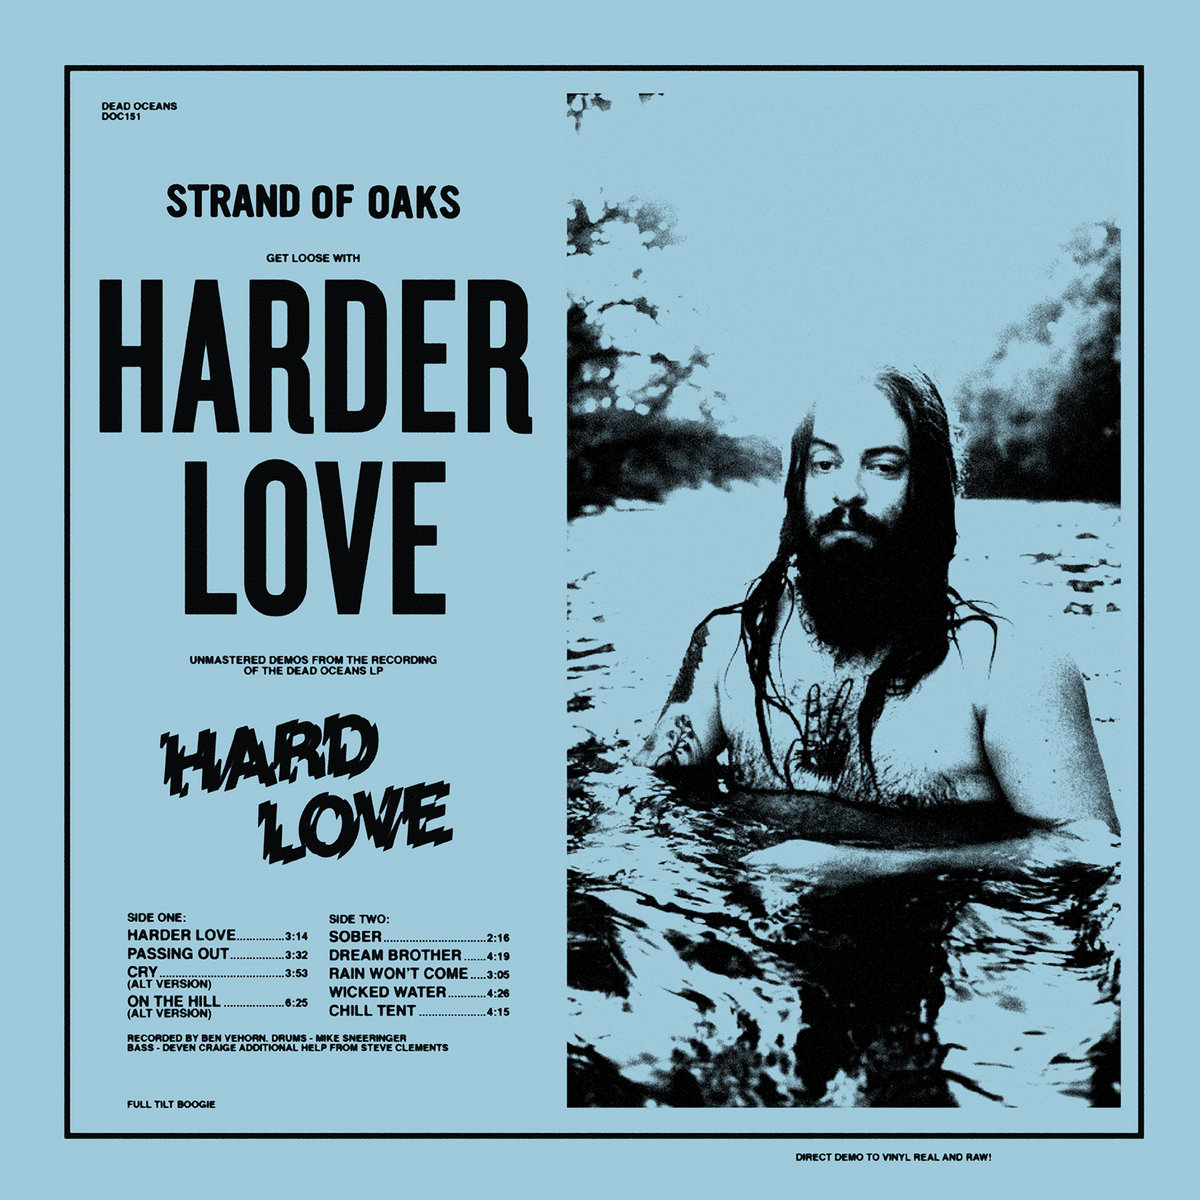 Poster Strand Strand Of Oaks Releasing A Collection Of Demos Called Harder Love